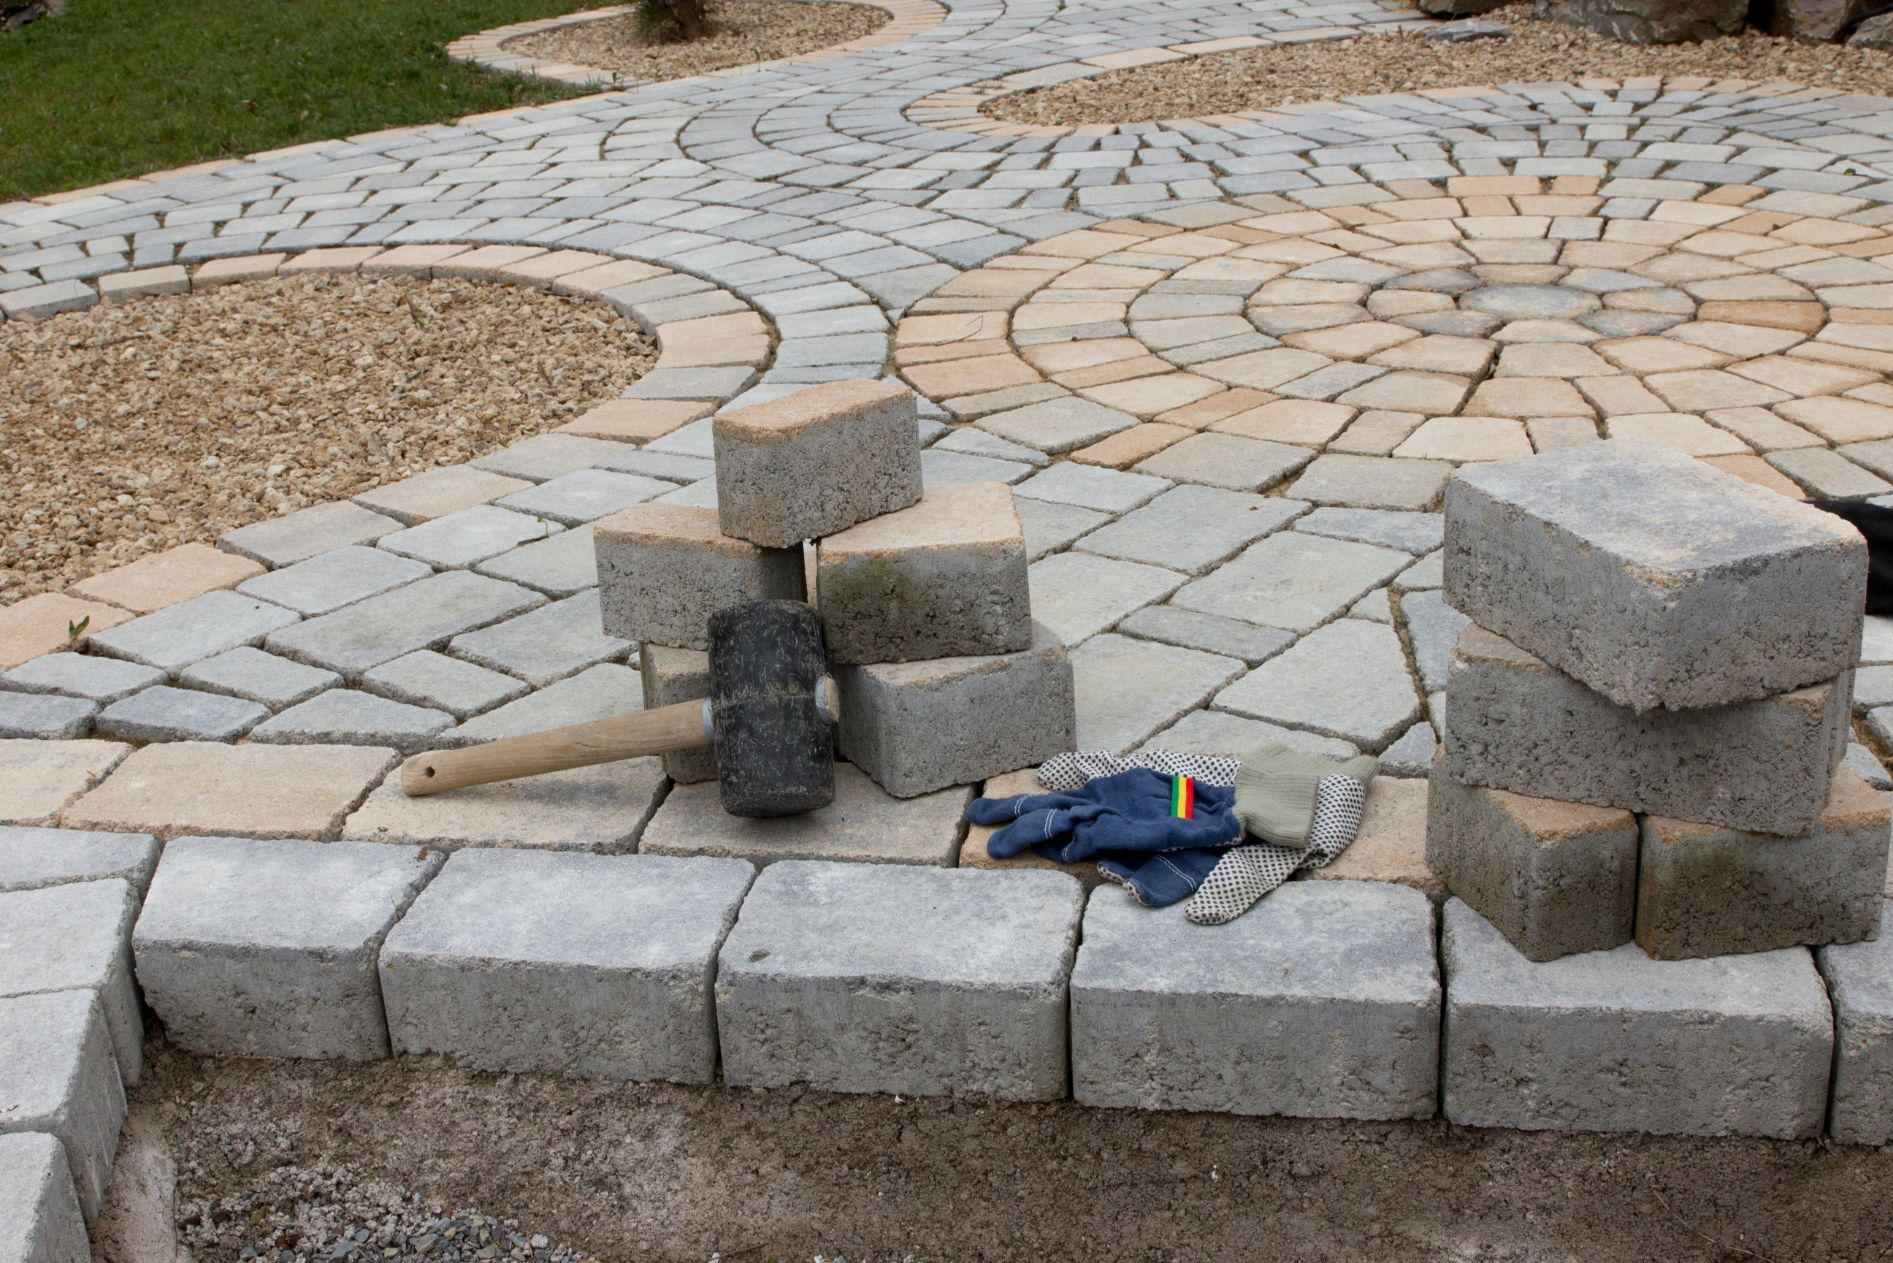 Driveway Paving in Mecklenburg County